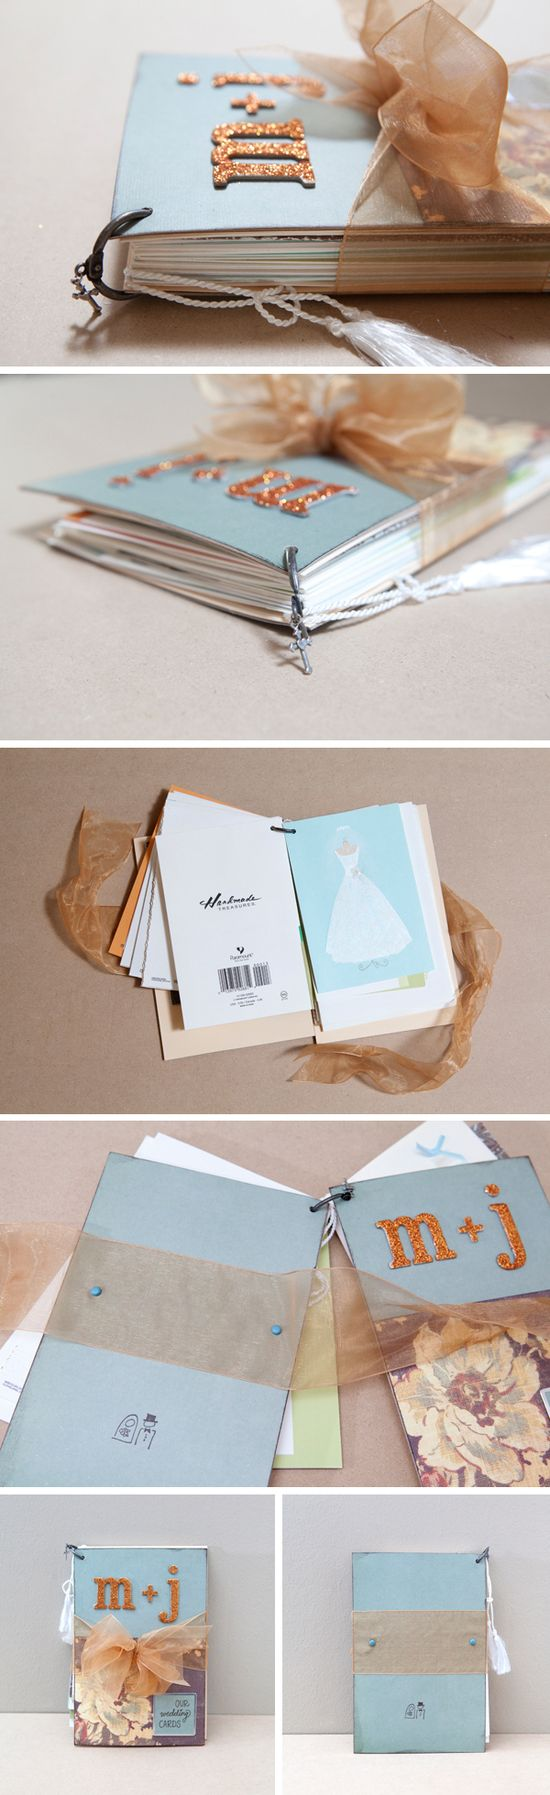 Make a book with all your wedding cards.